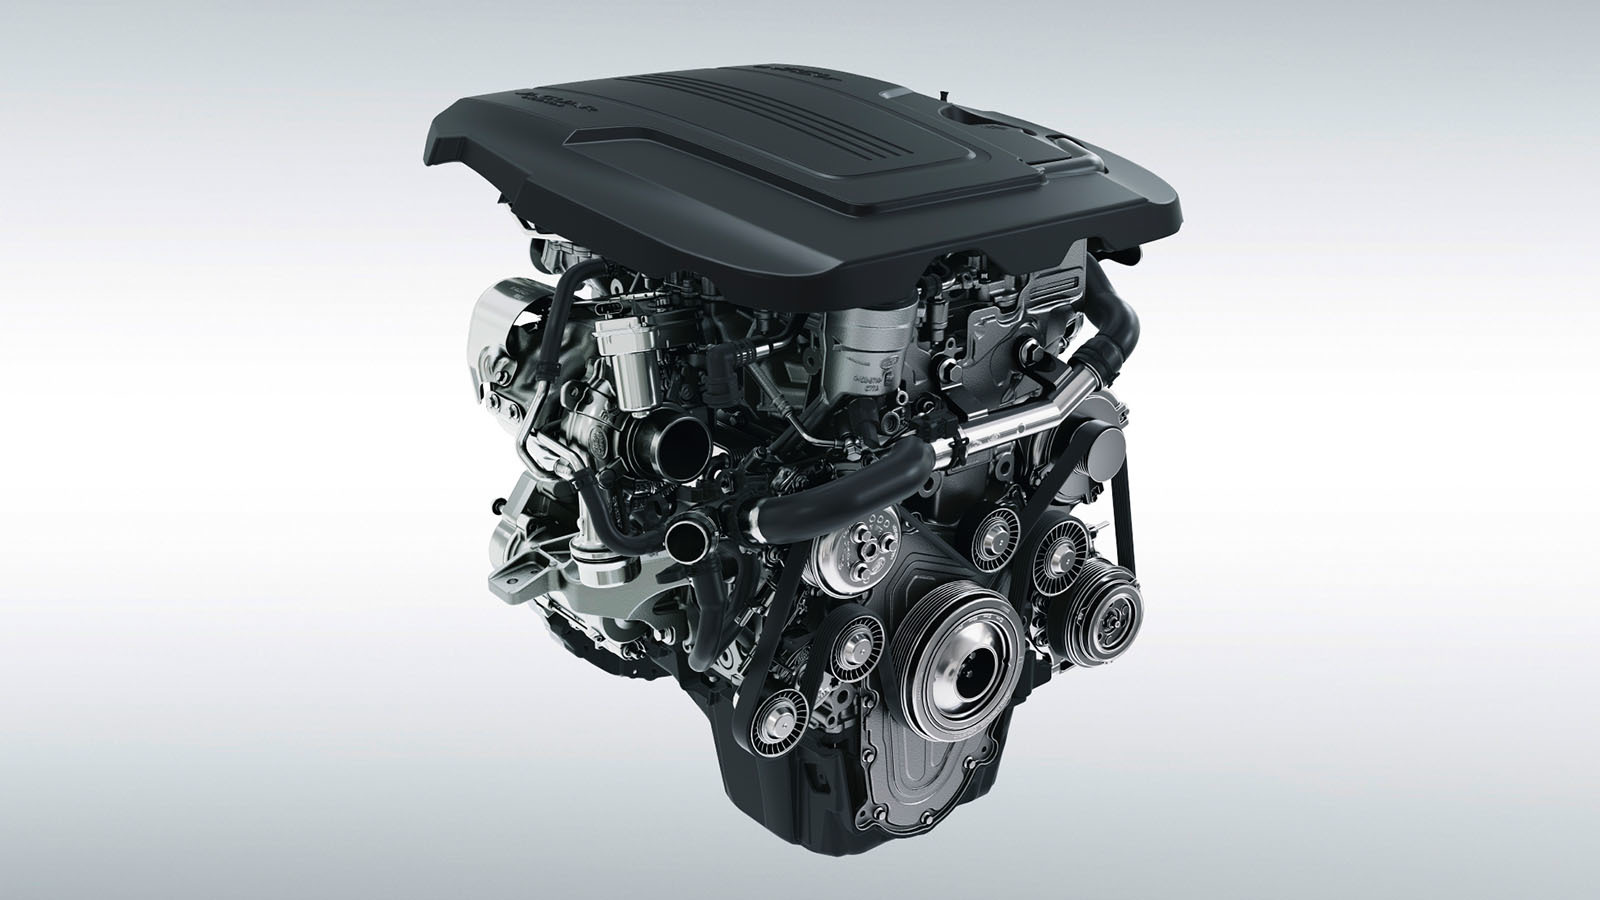 Jaguar 2.0-Liter 4-Cylinder Turbocharged Ingenium Gasoline Engine